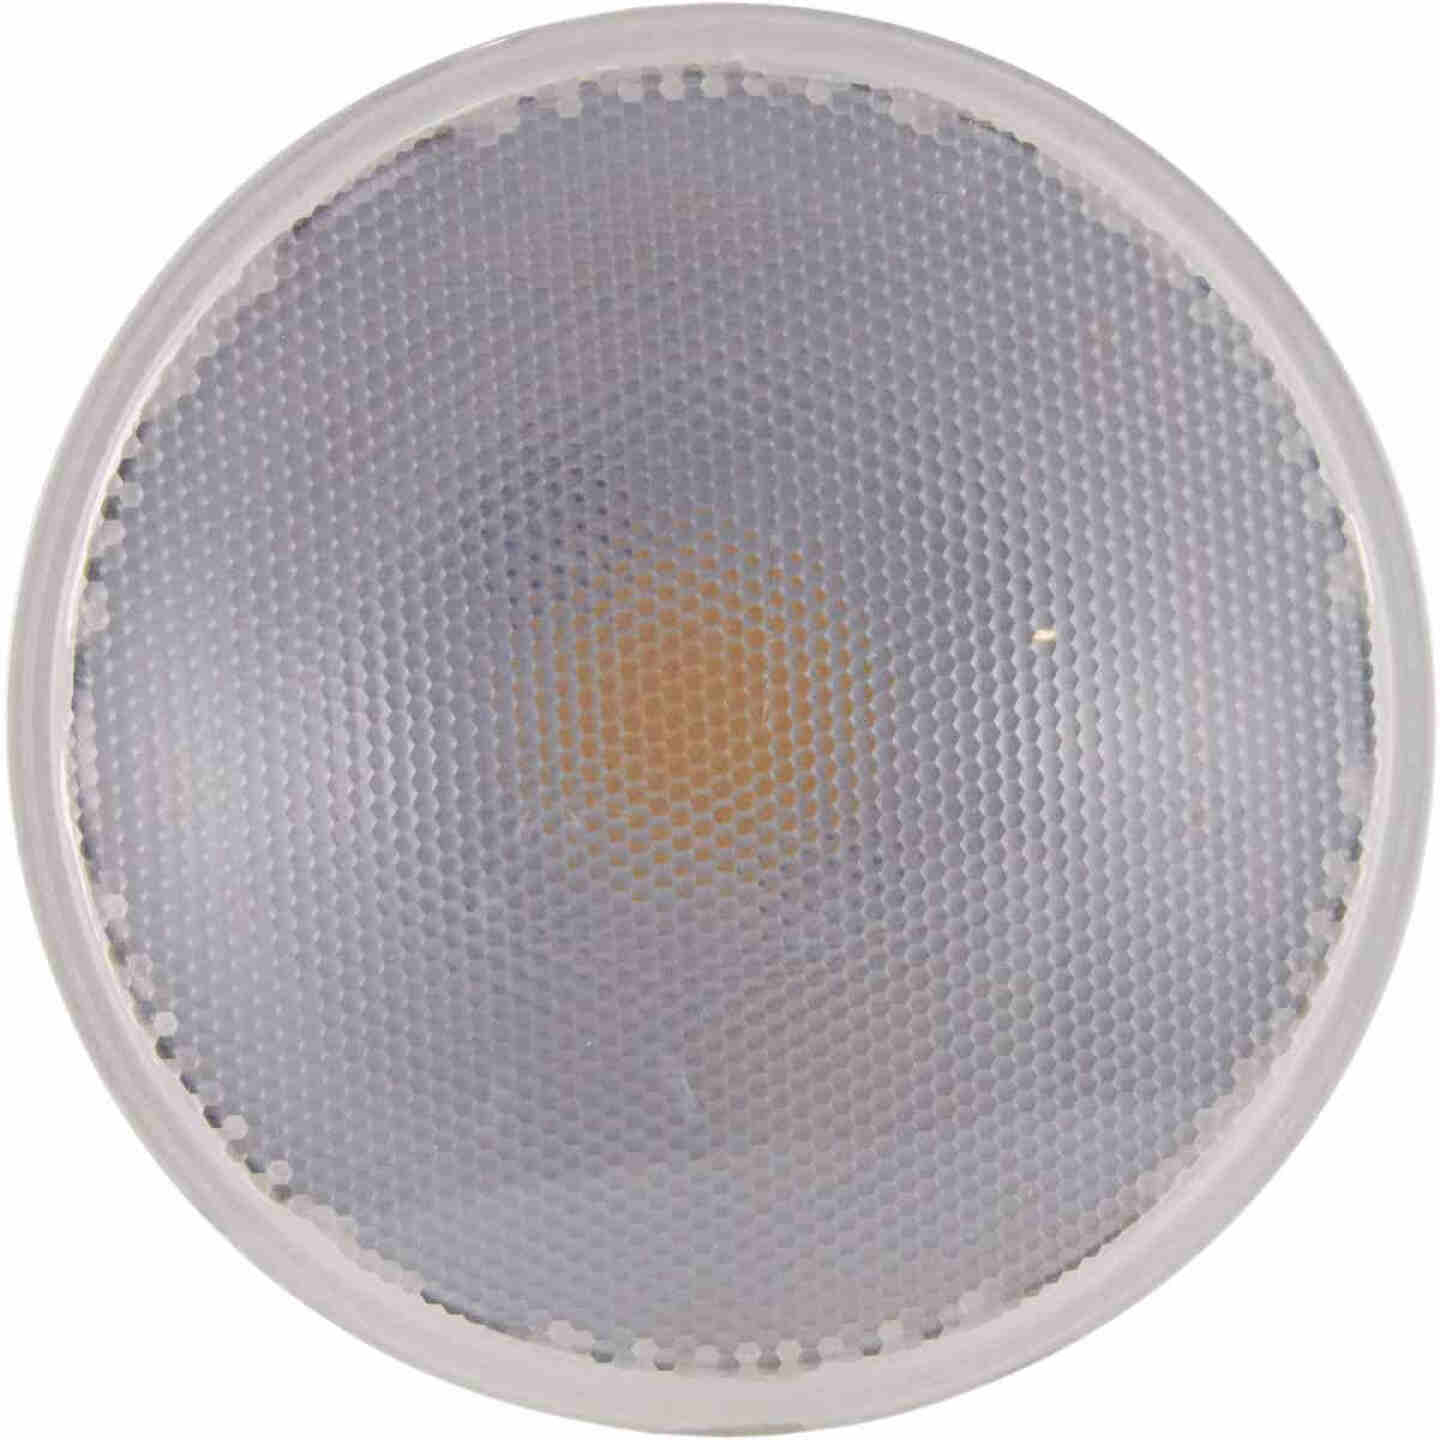 Satco Nuvo 90W Equivalent Natural Light PAR38 Medium Dimmable LED Floodlight Light Bulb Image 3